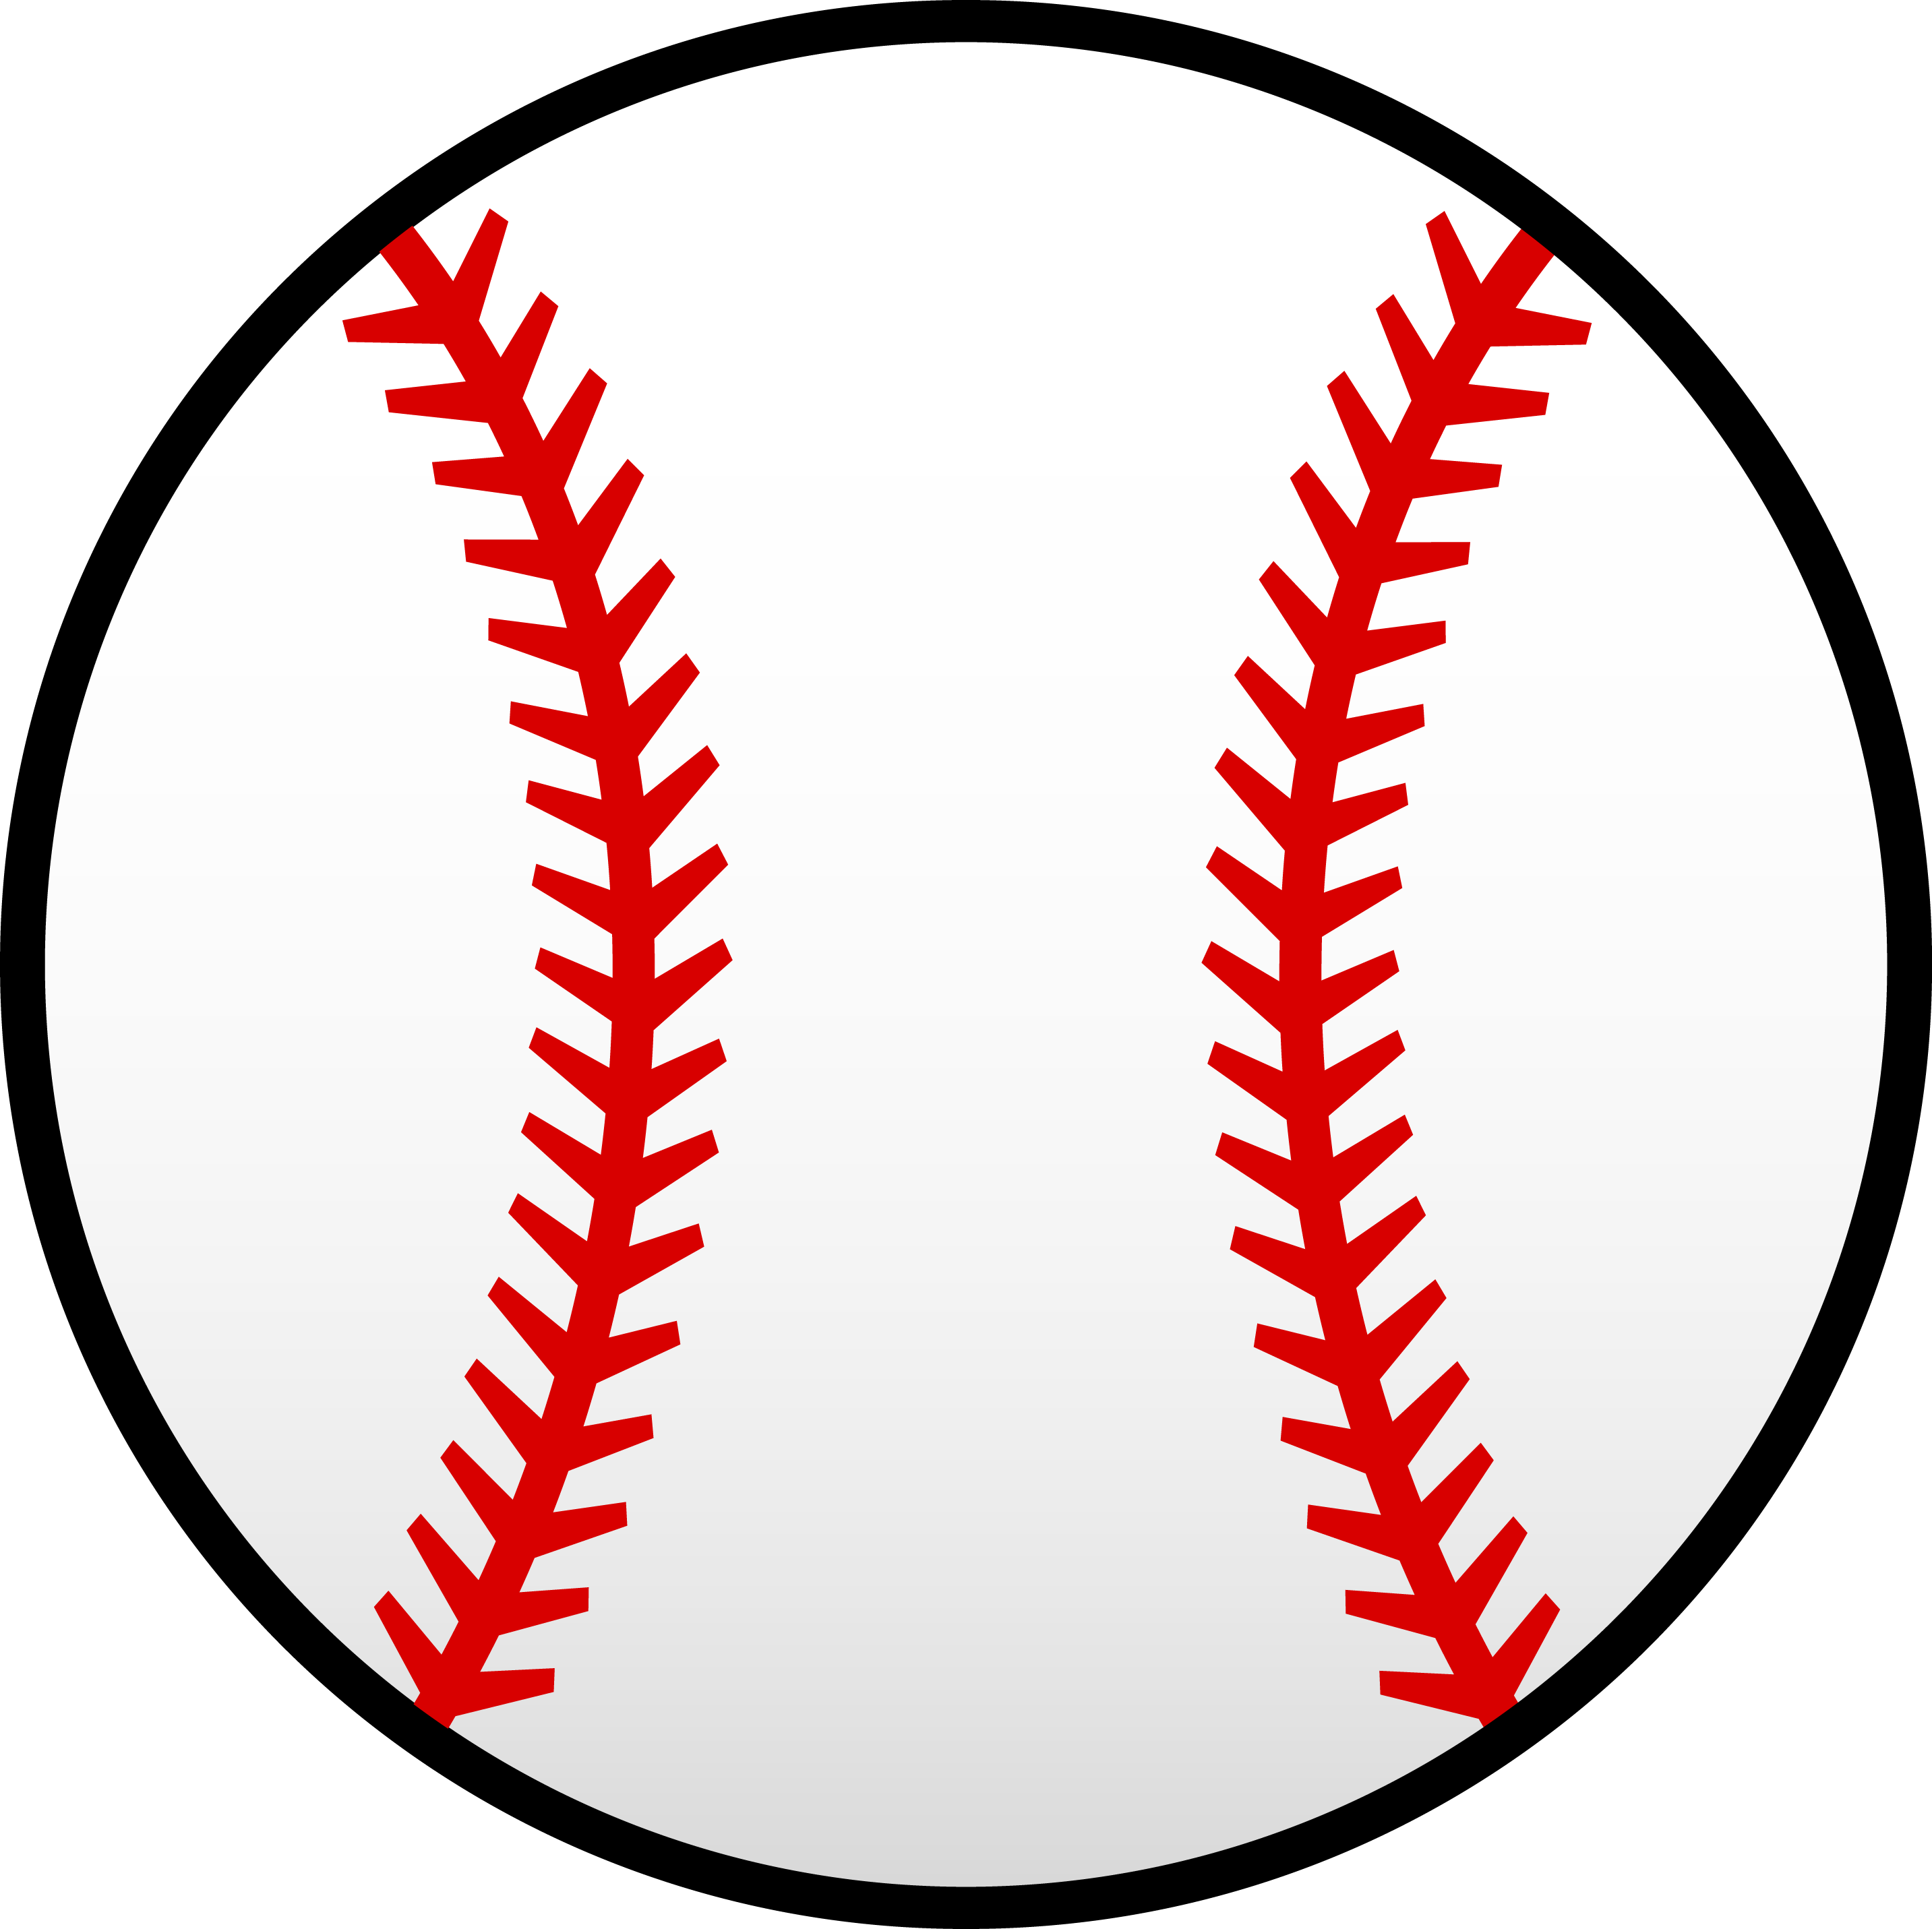 Free baseball clip art images free clipart 2.